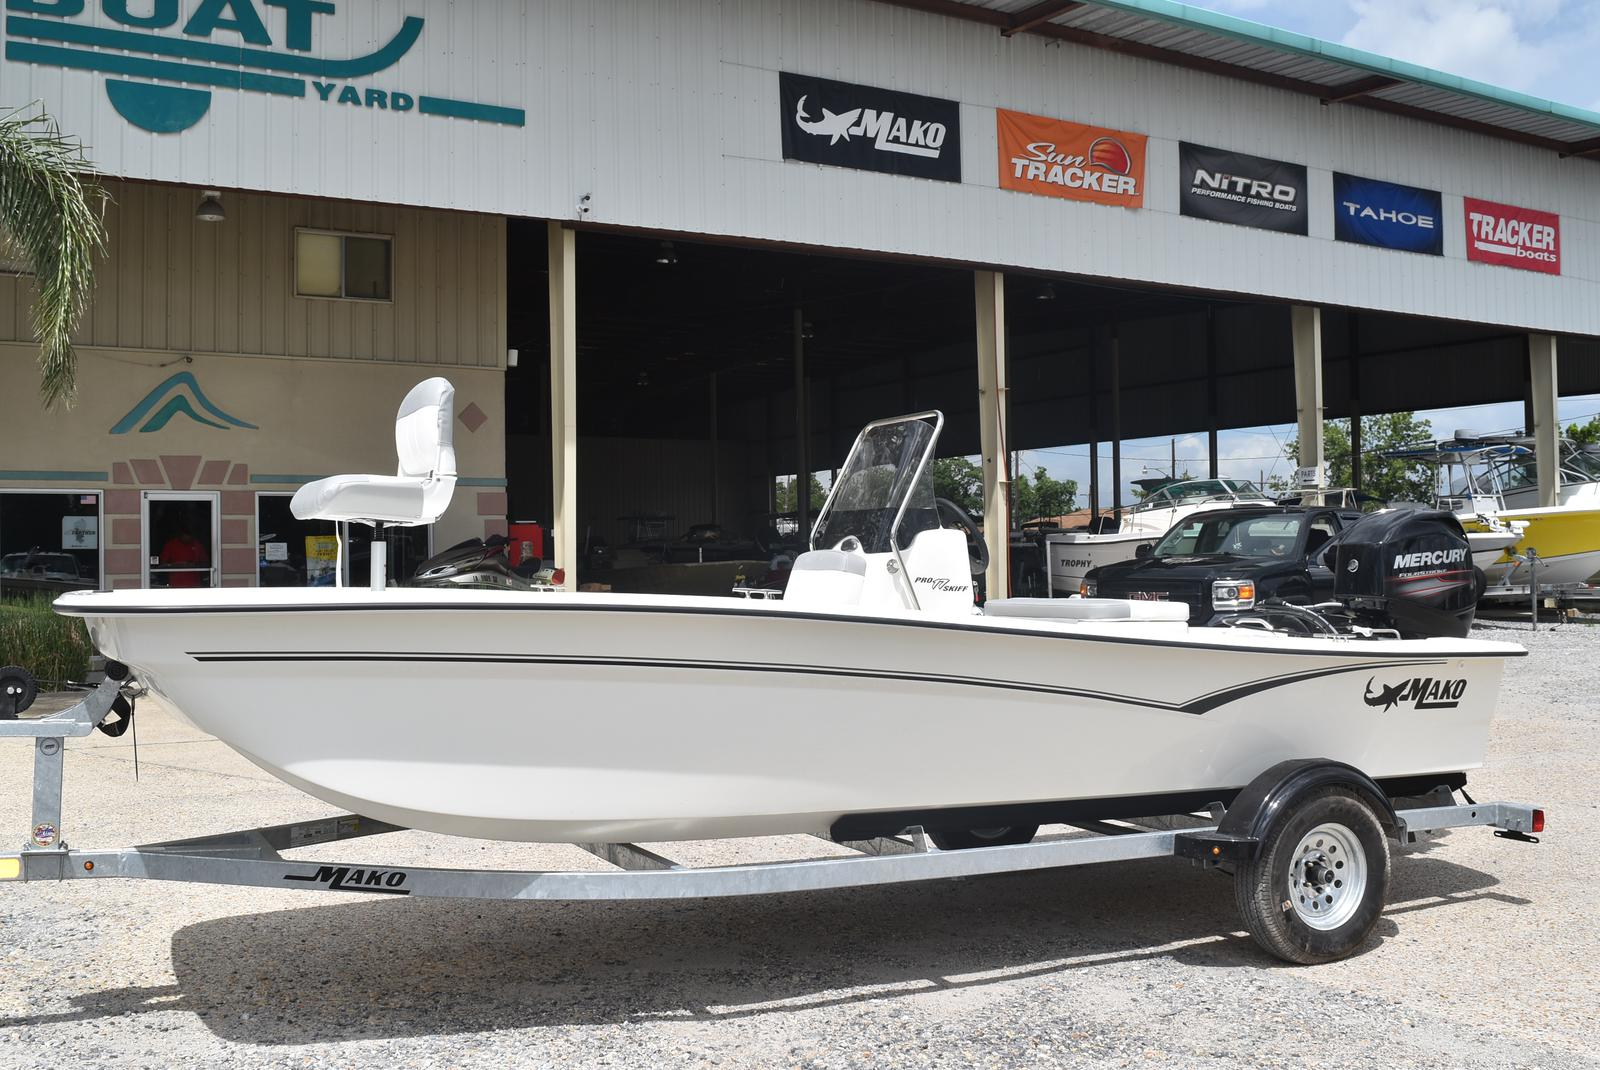 2020 Mako boat for sale, model of the boat is Pro Skiff 17, 75 ELPT & Image # 107 of 702